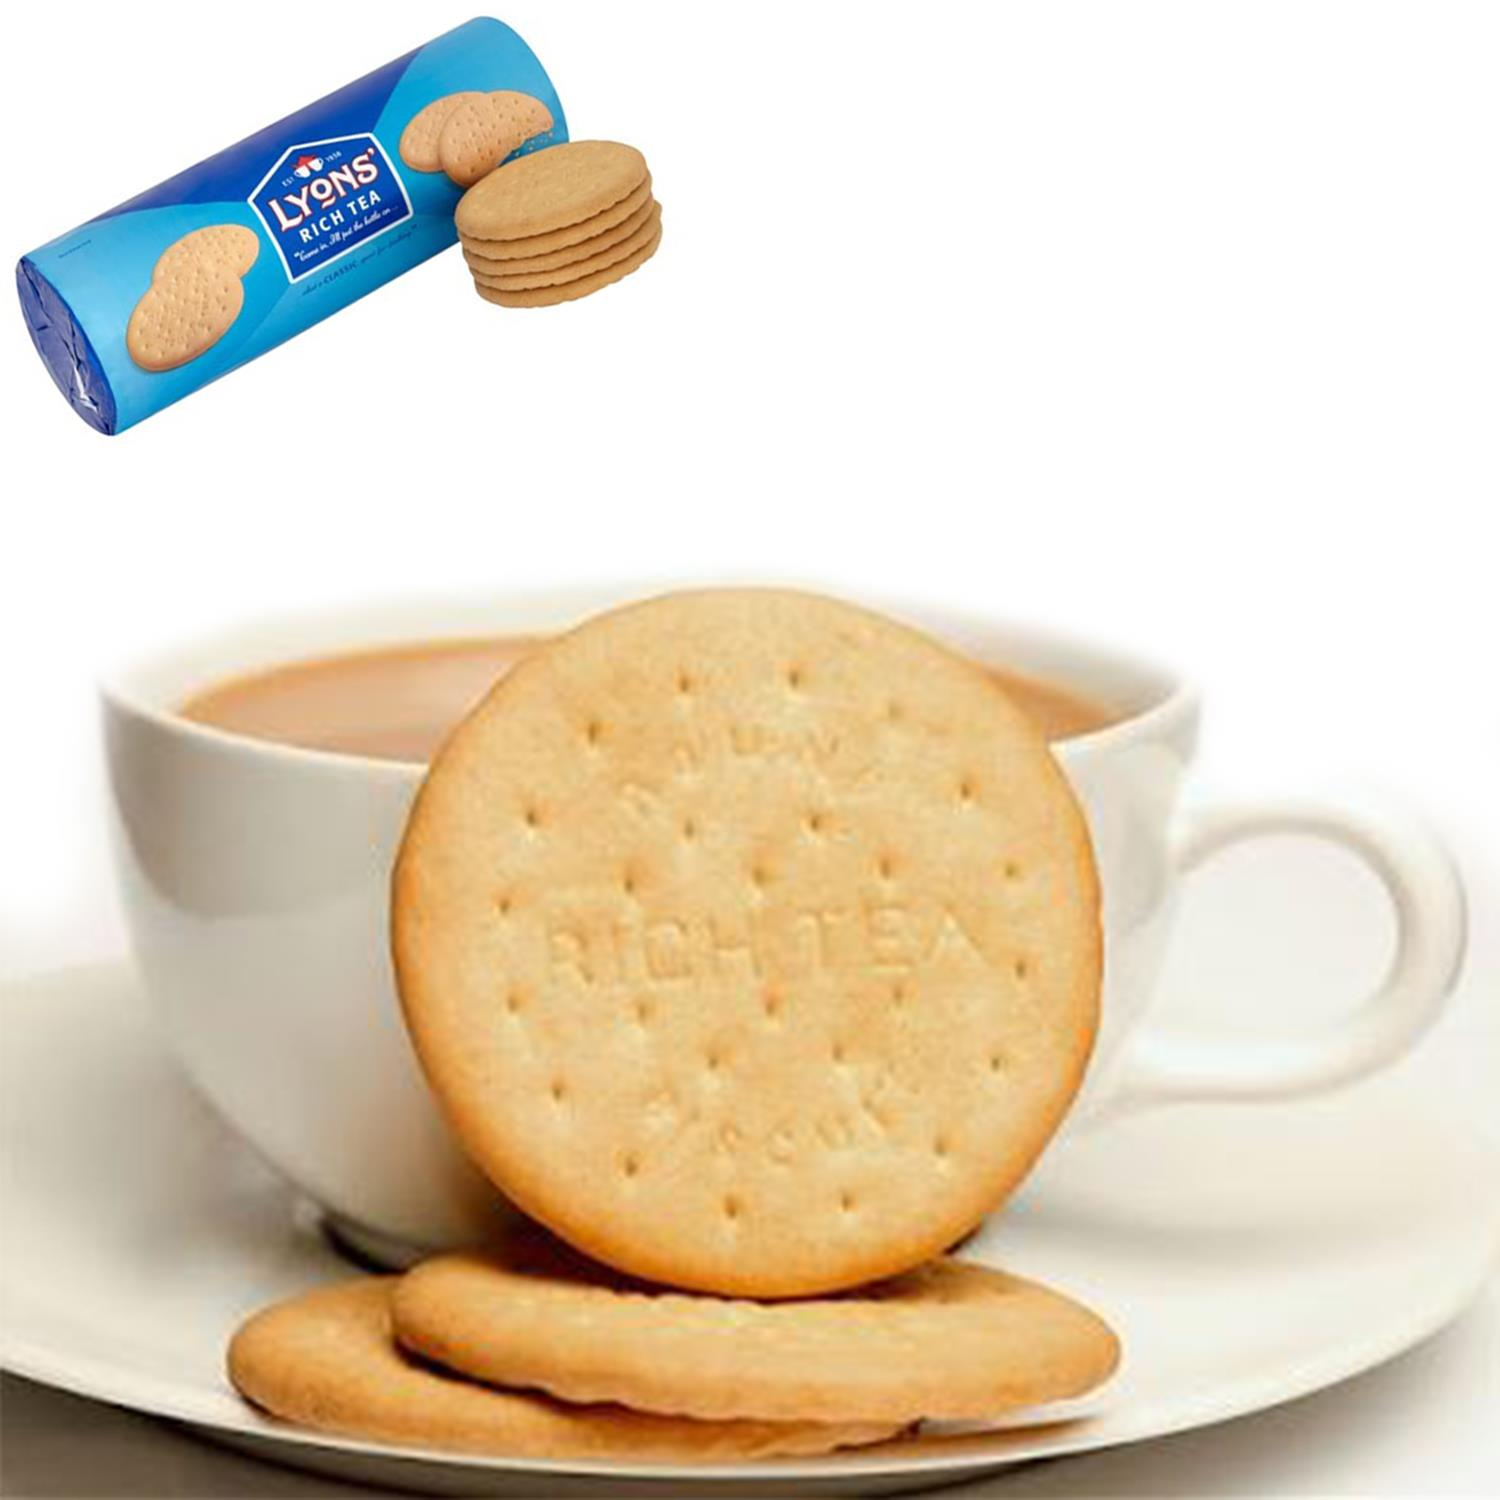 thumbnail 23 - Lyons Rich Tea Biscuits 300g, Great for a morning or afternoon snack